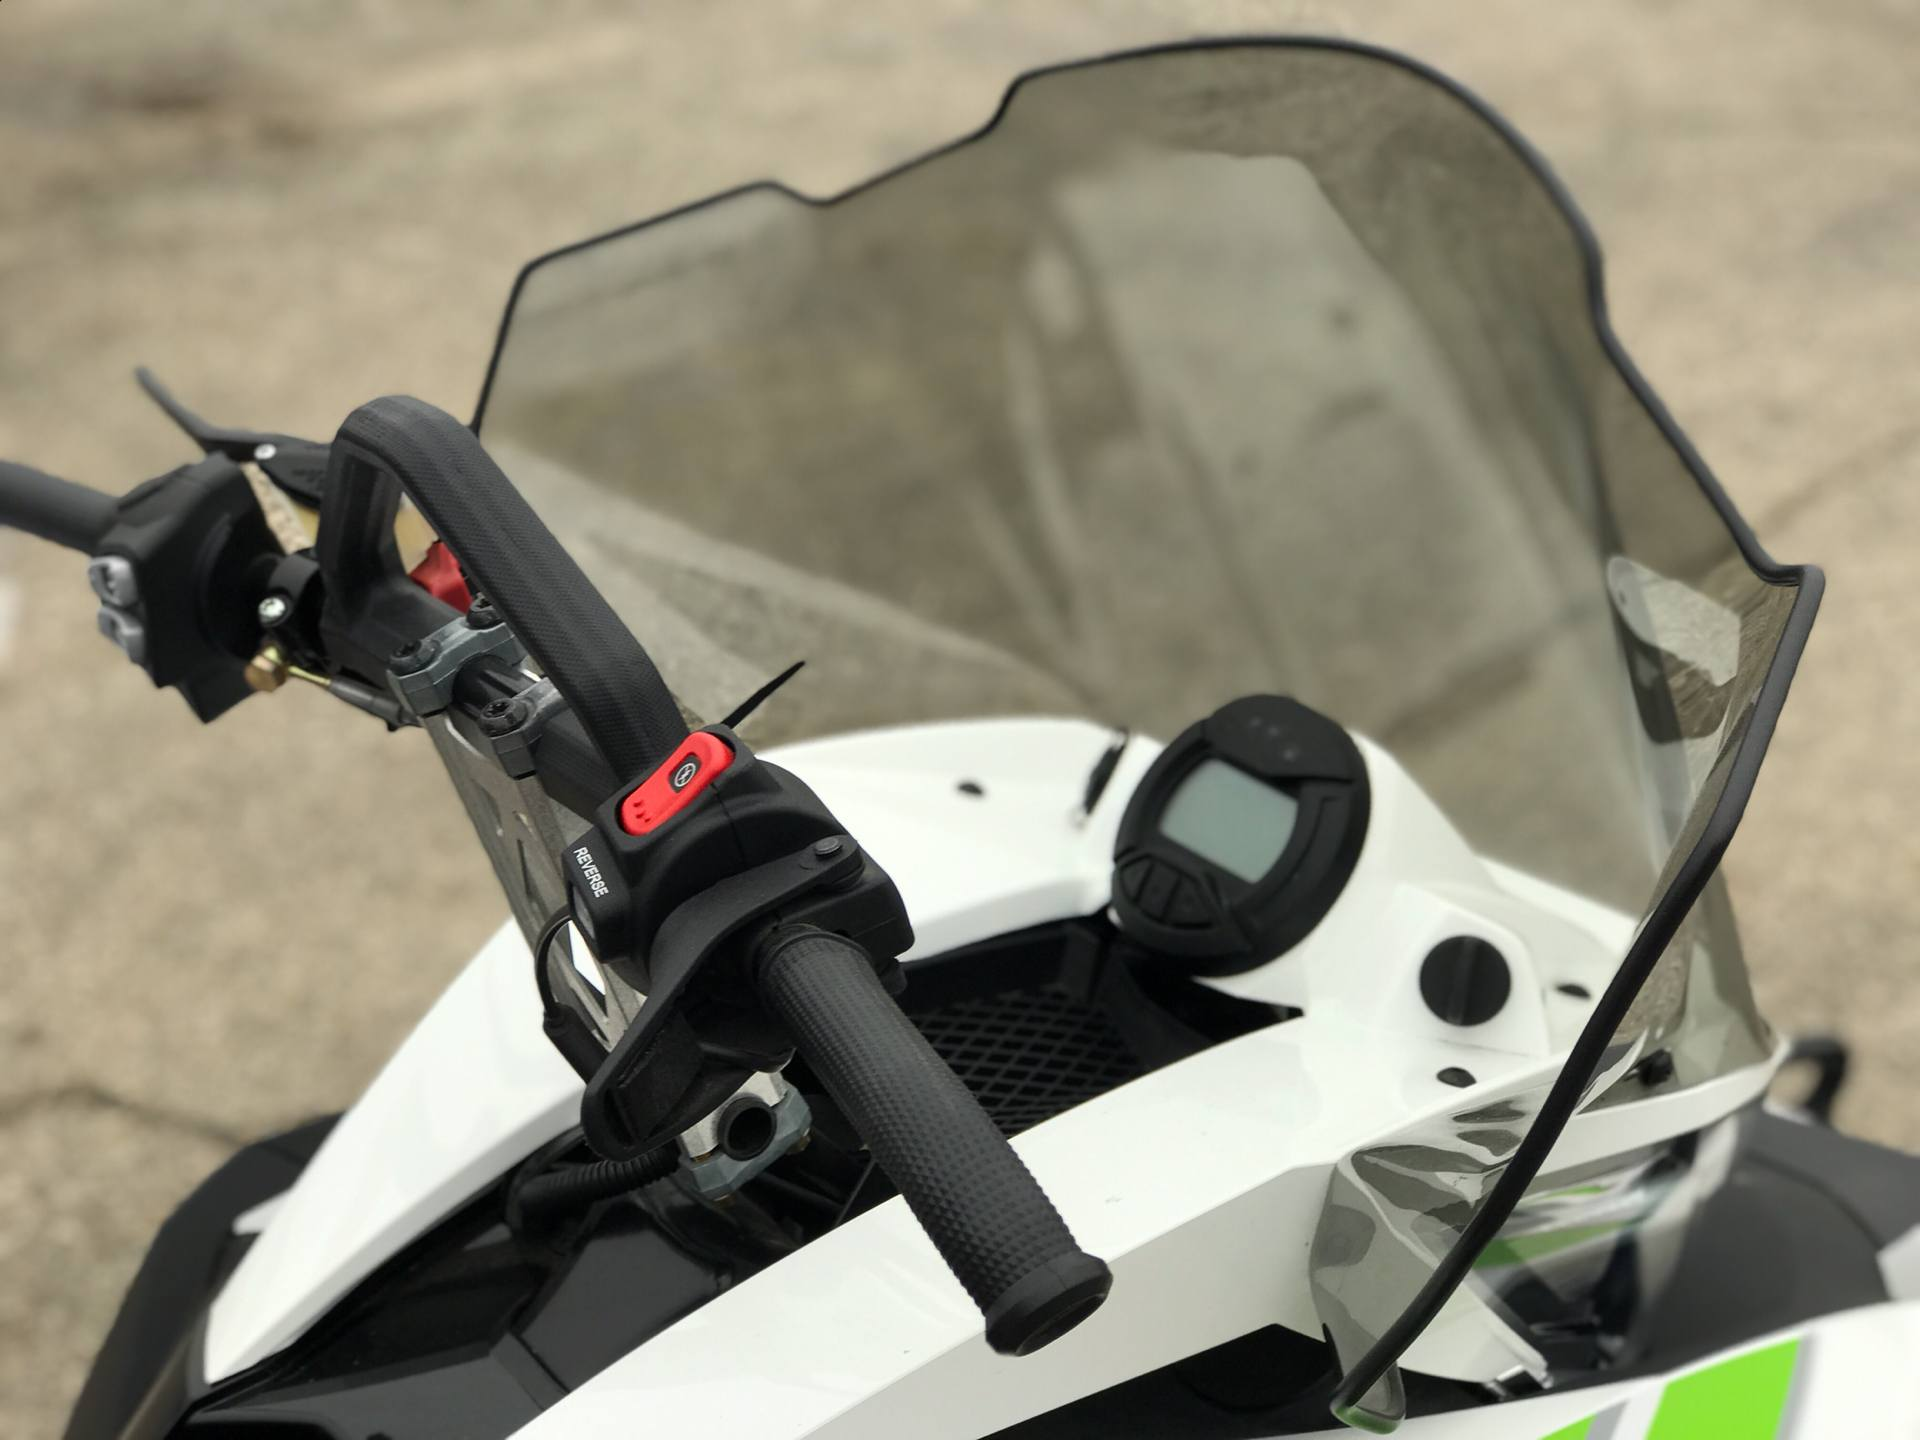 2018 Arctic Cat Norseman 3000 in Edgerton, Wisconsin - Photo 7